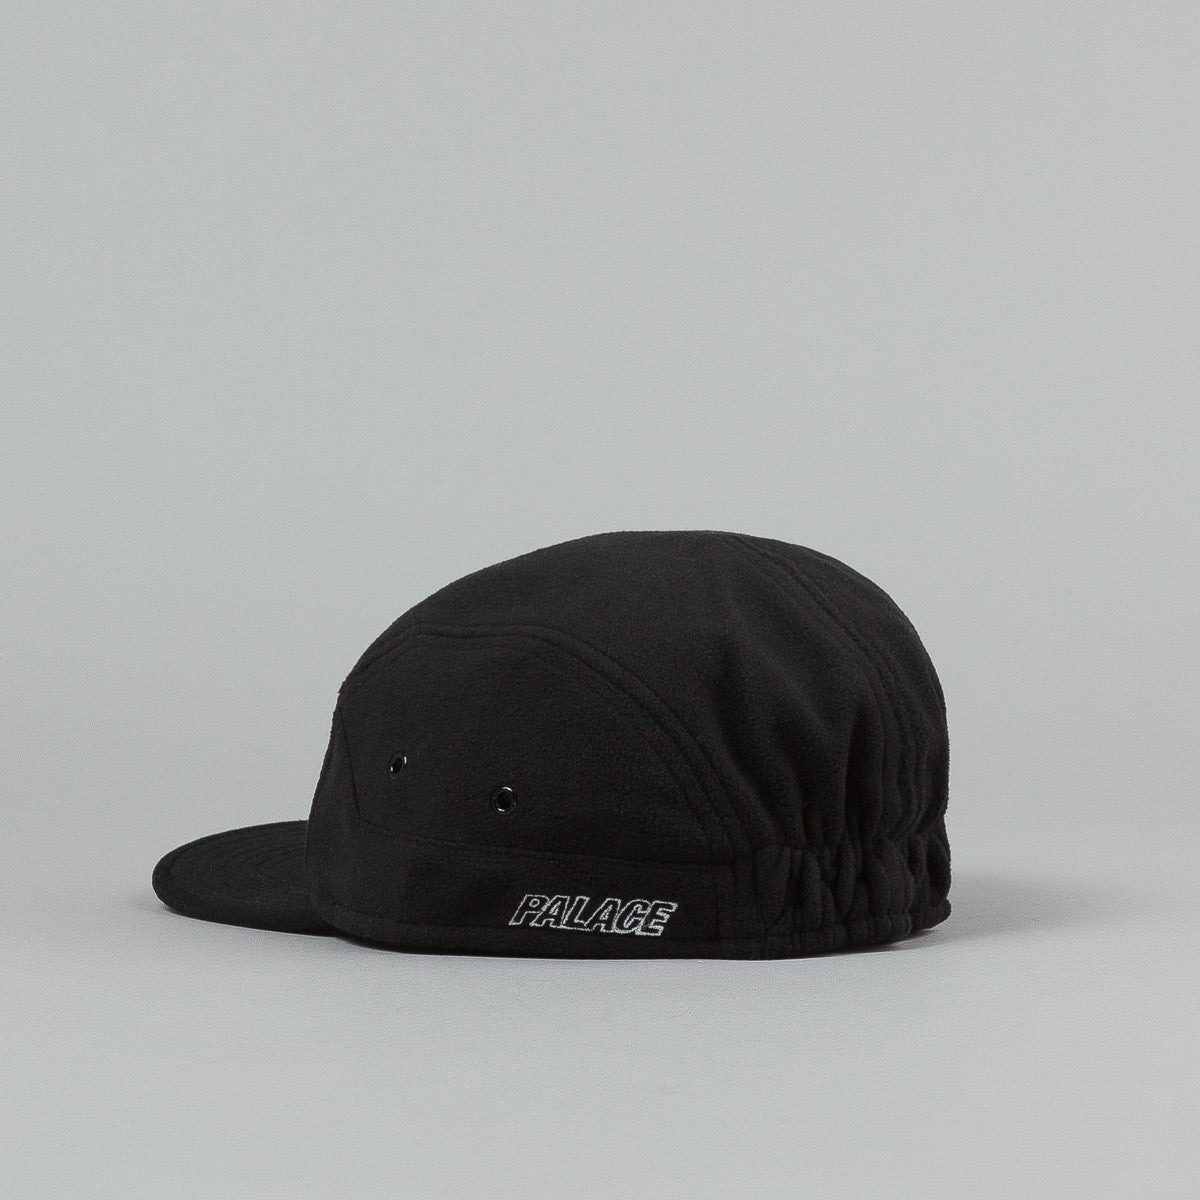 Palace Fleece 7 Panel Cap - Black